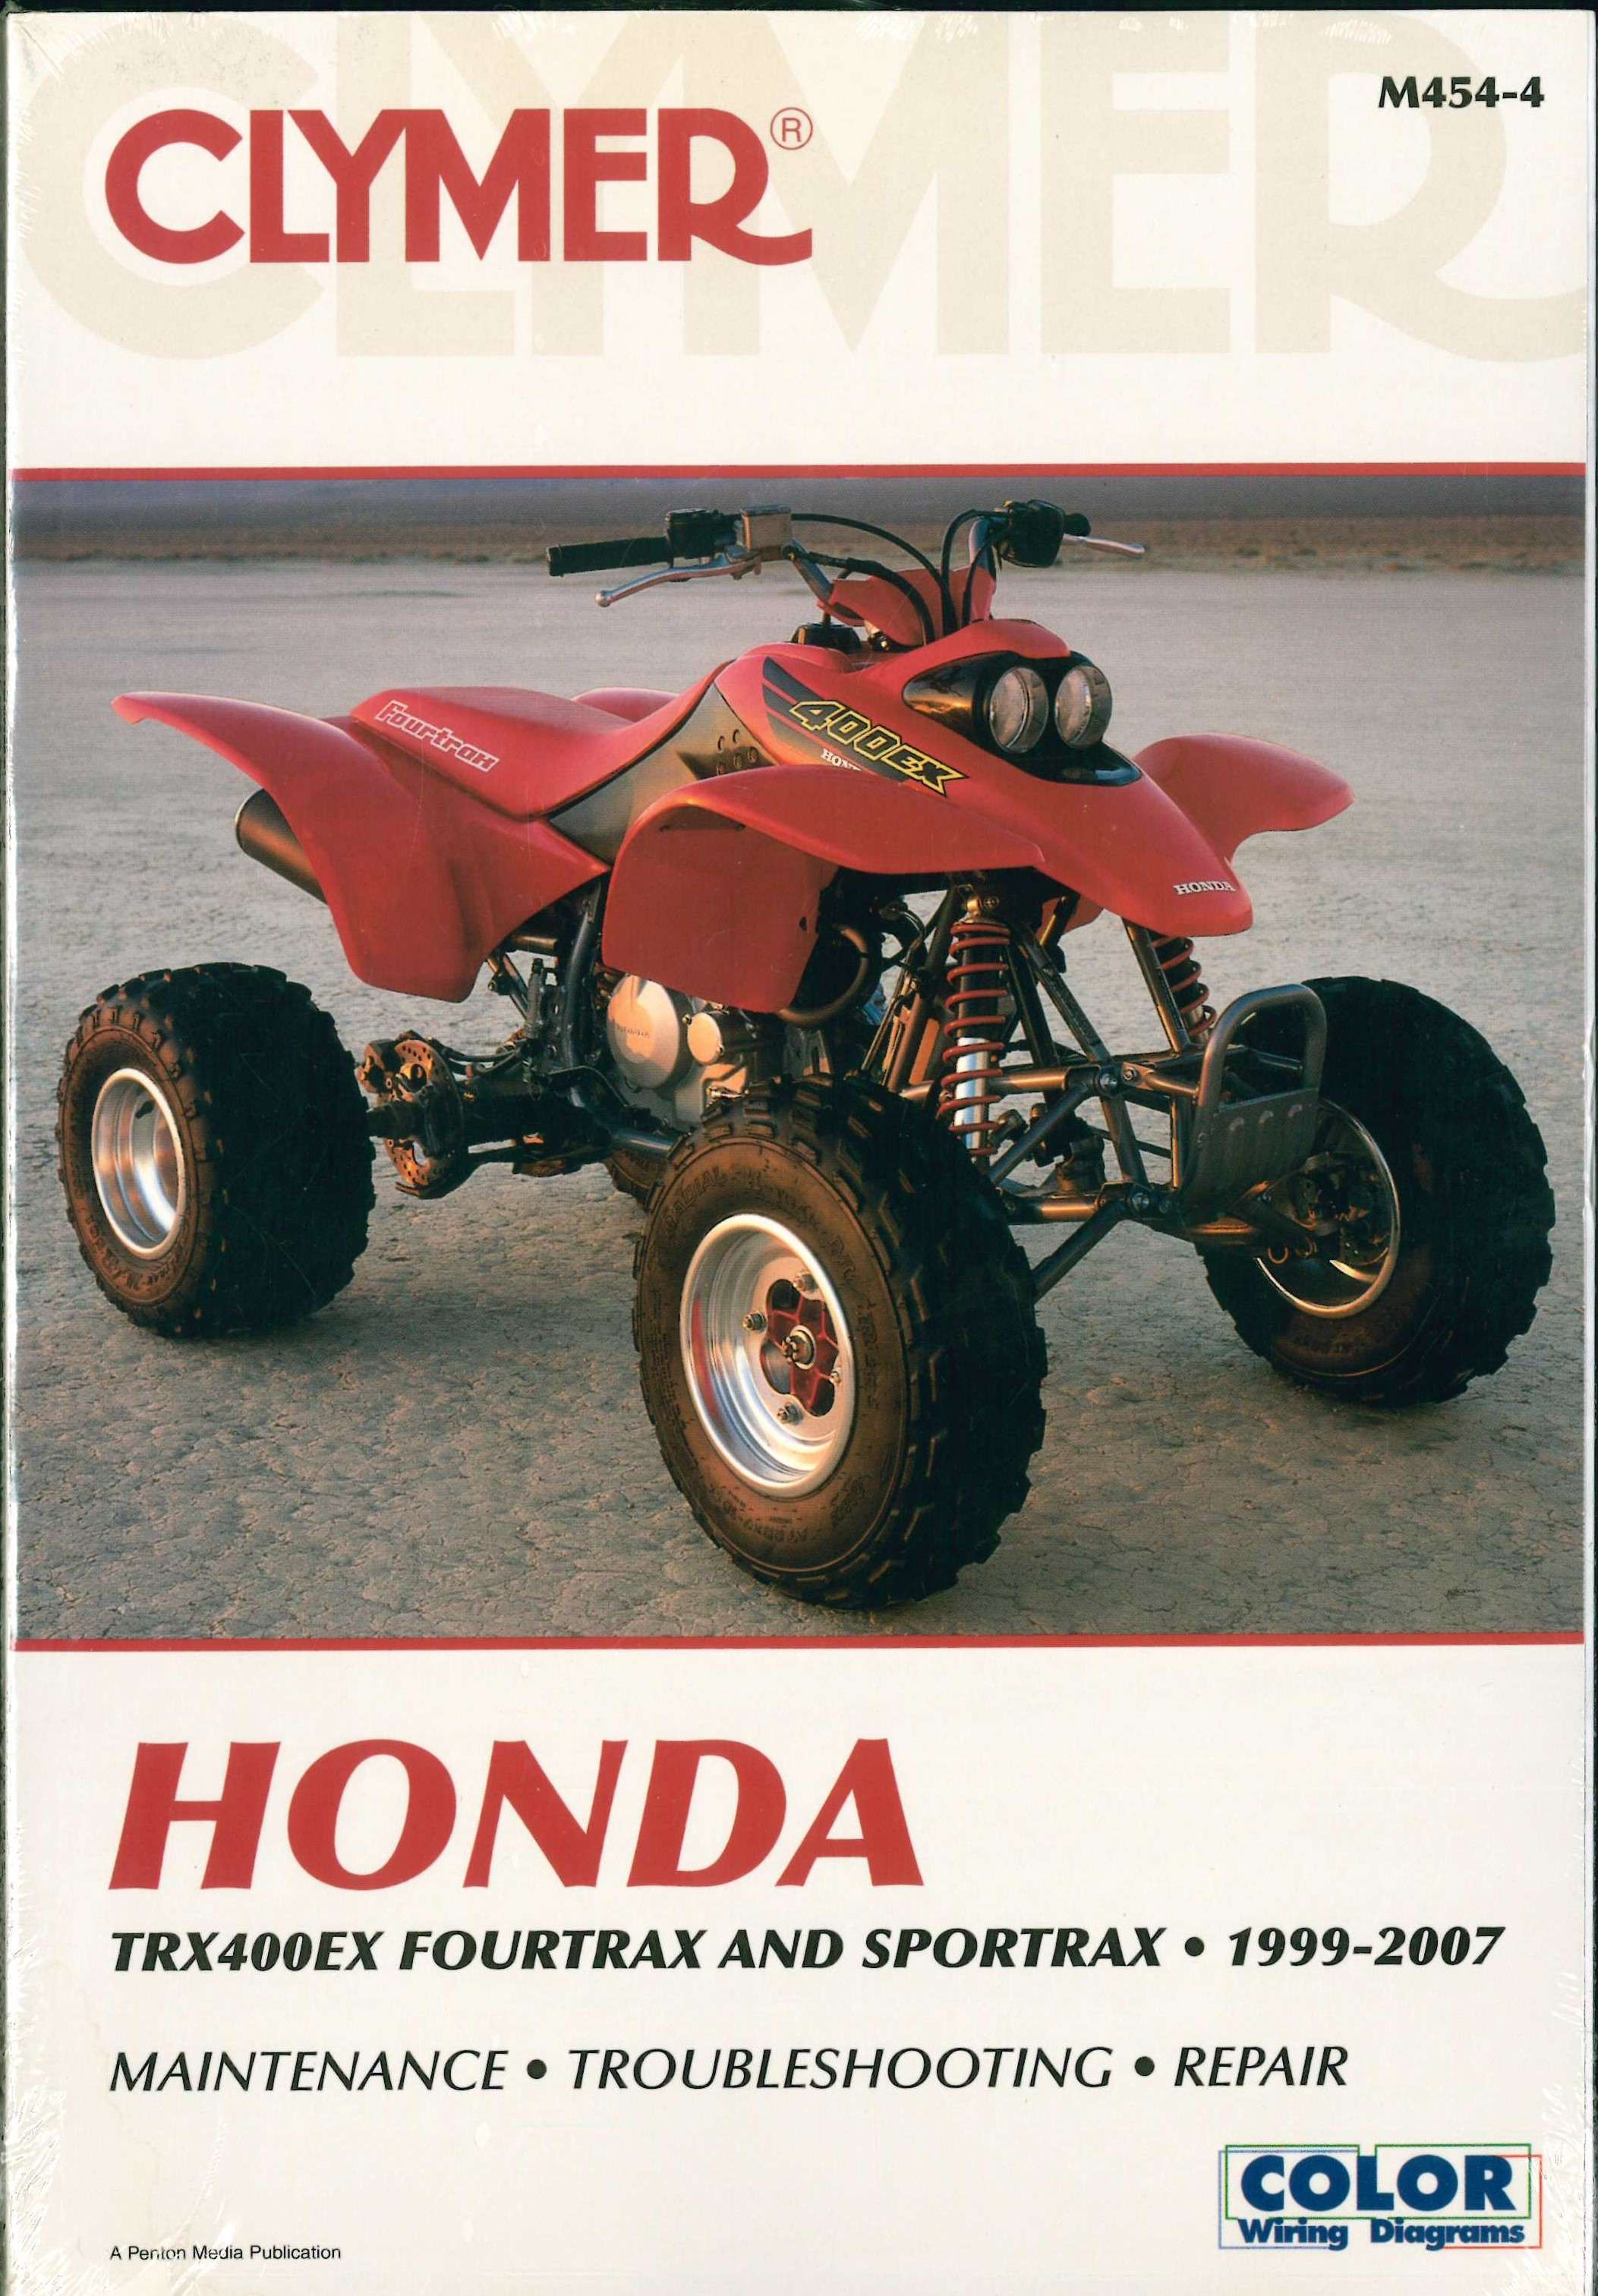 1999 2007 Honda Trx400ex Fourtrax Sportrax Atv Repair Manual By Clymer 400ex Ignition Wiring Diagram